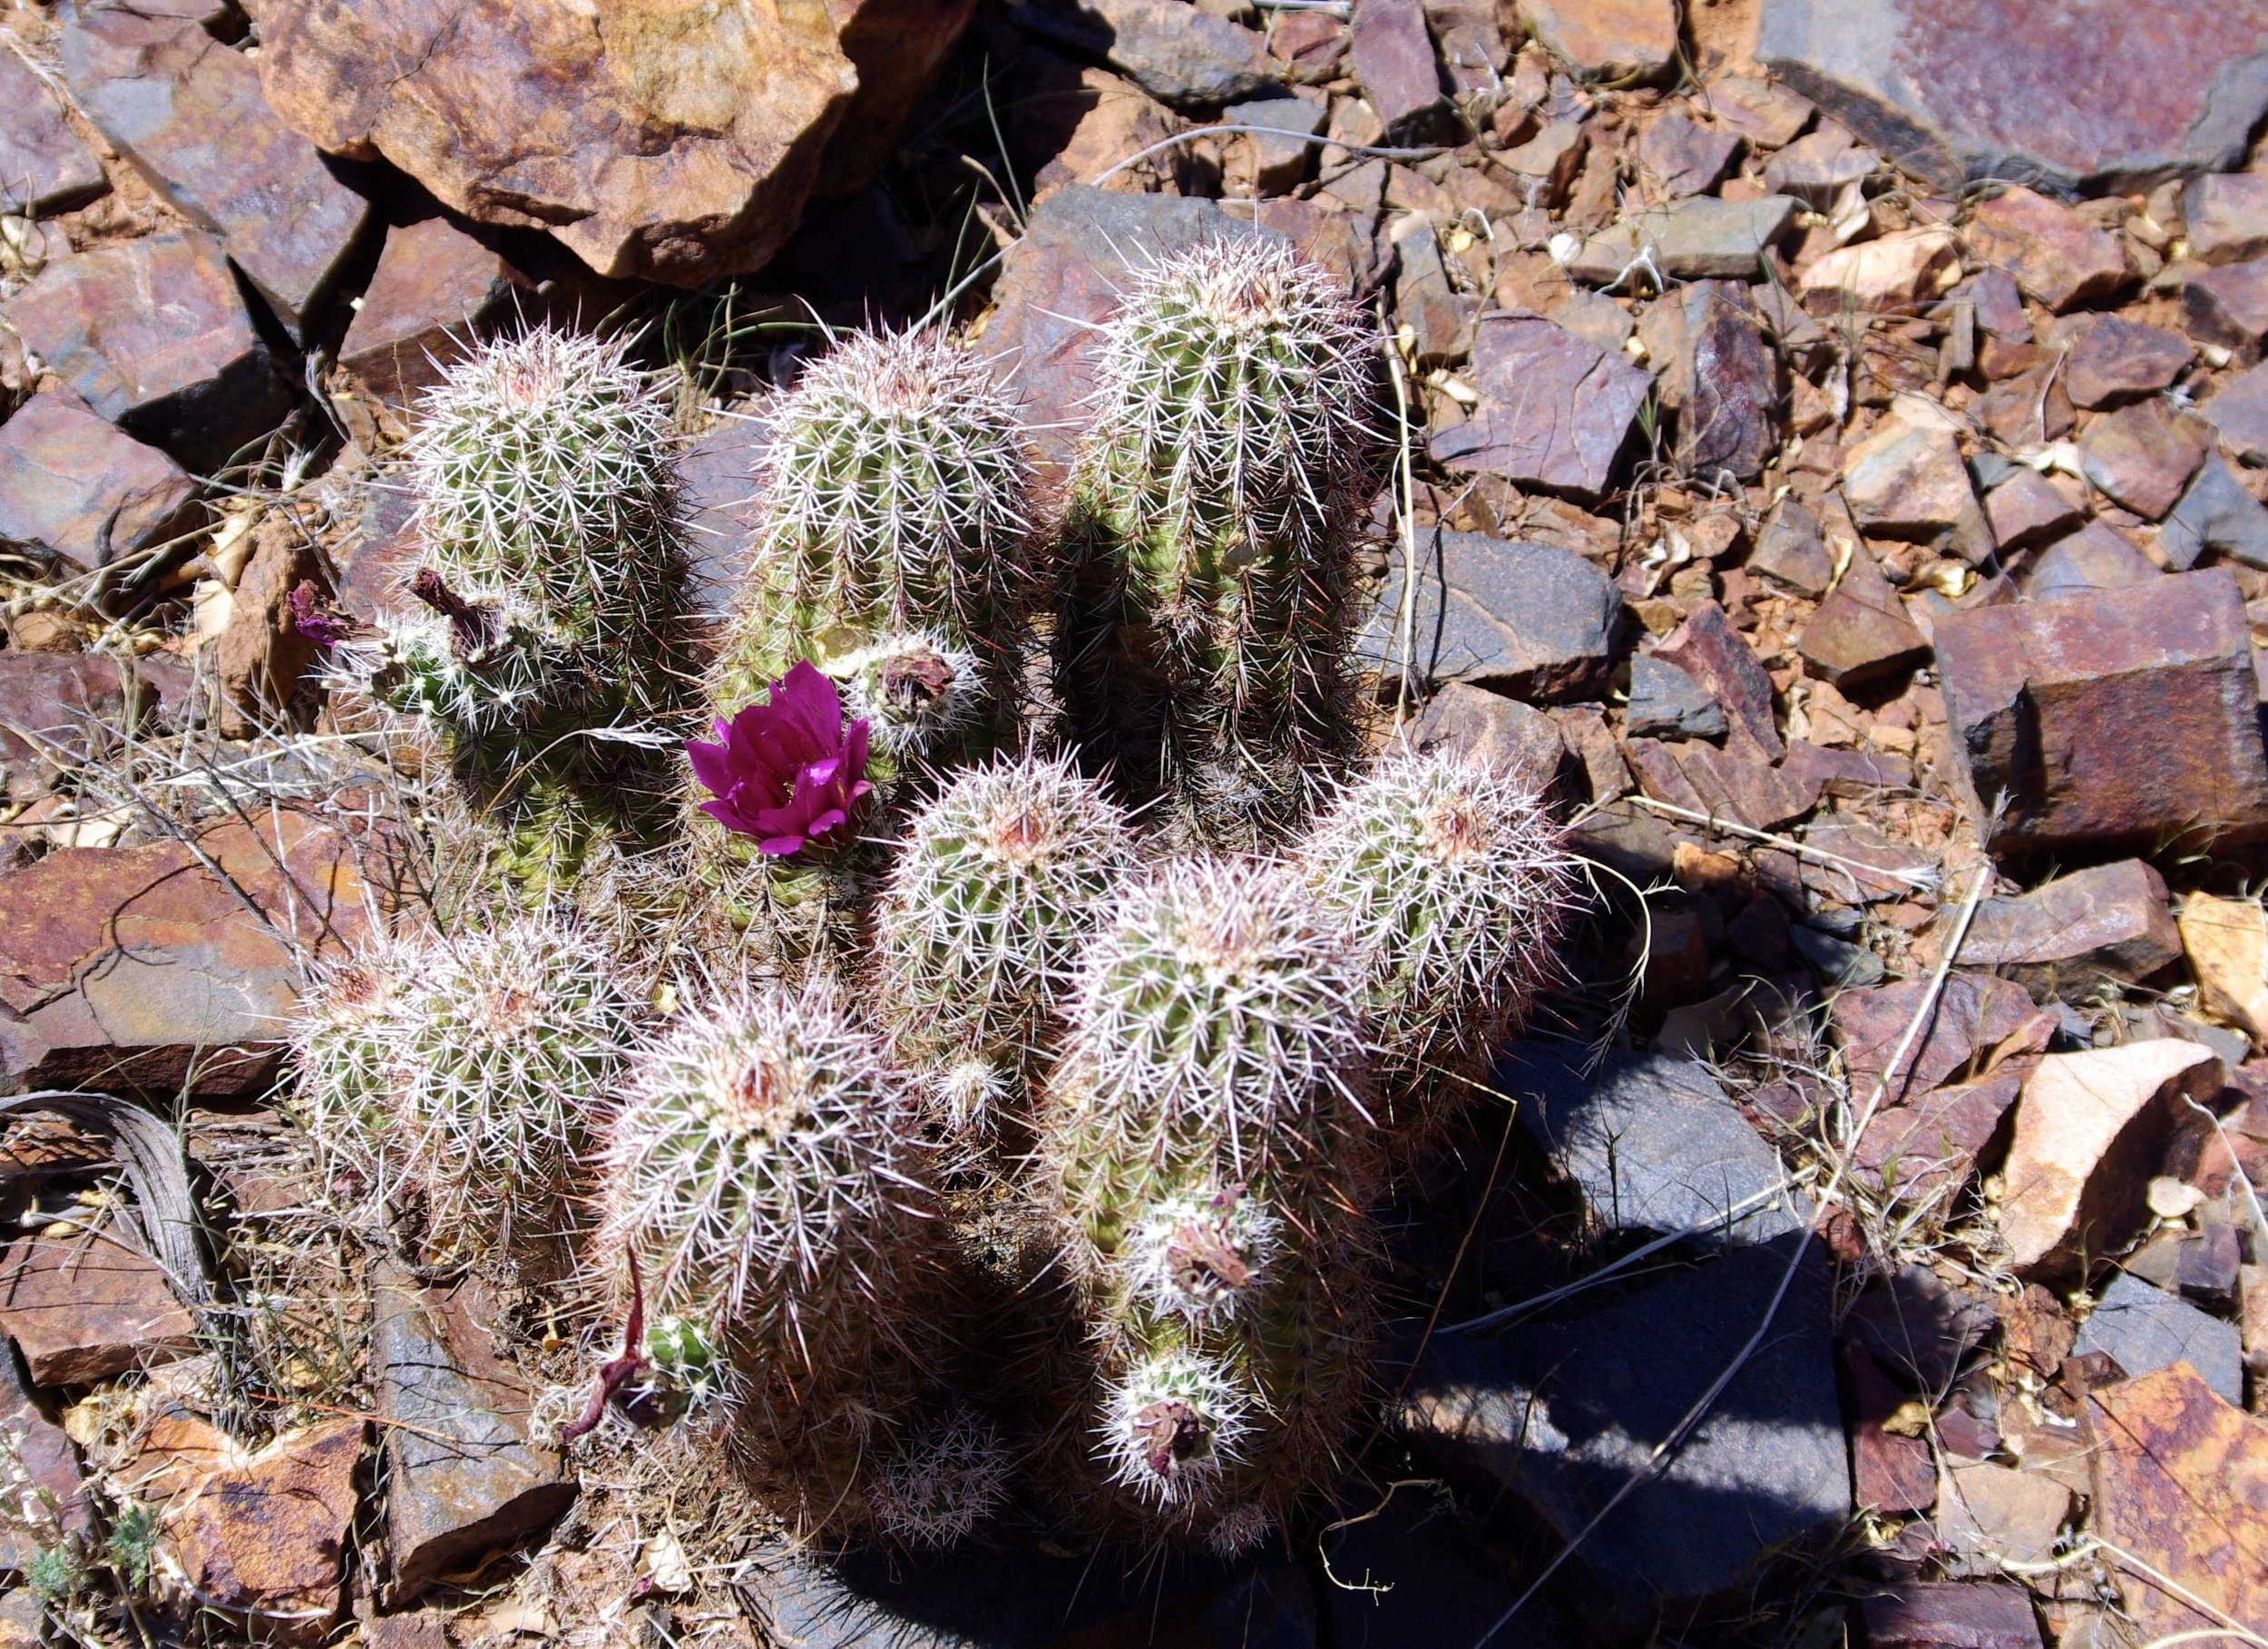 The cacti are starting to bloom up here